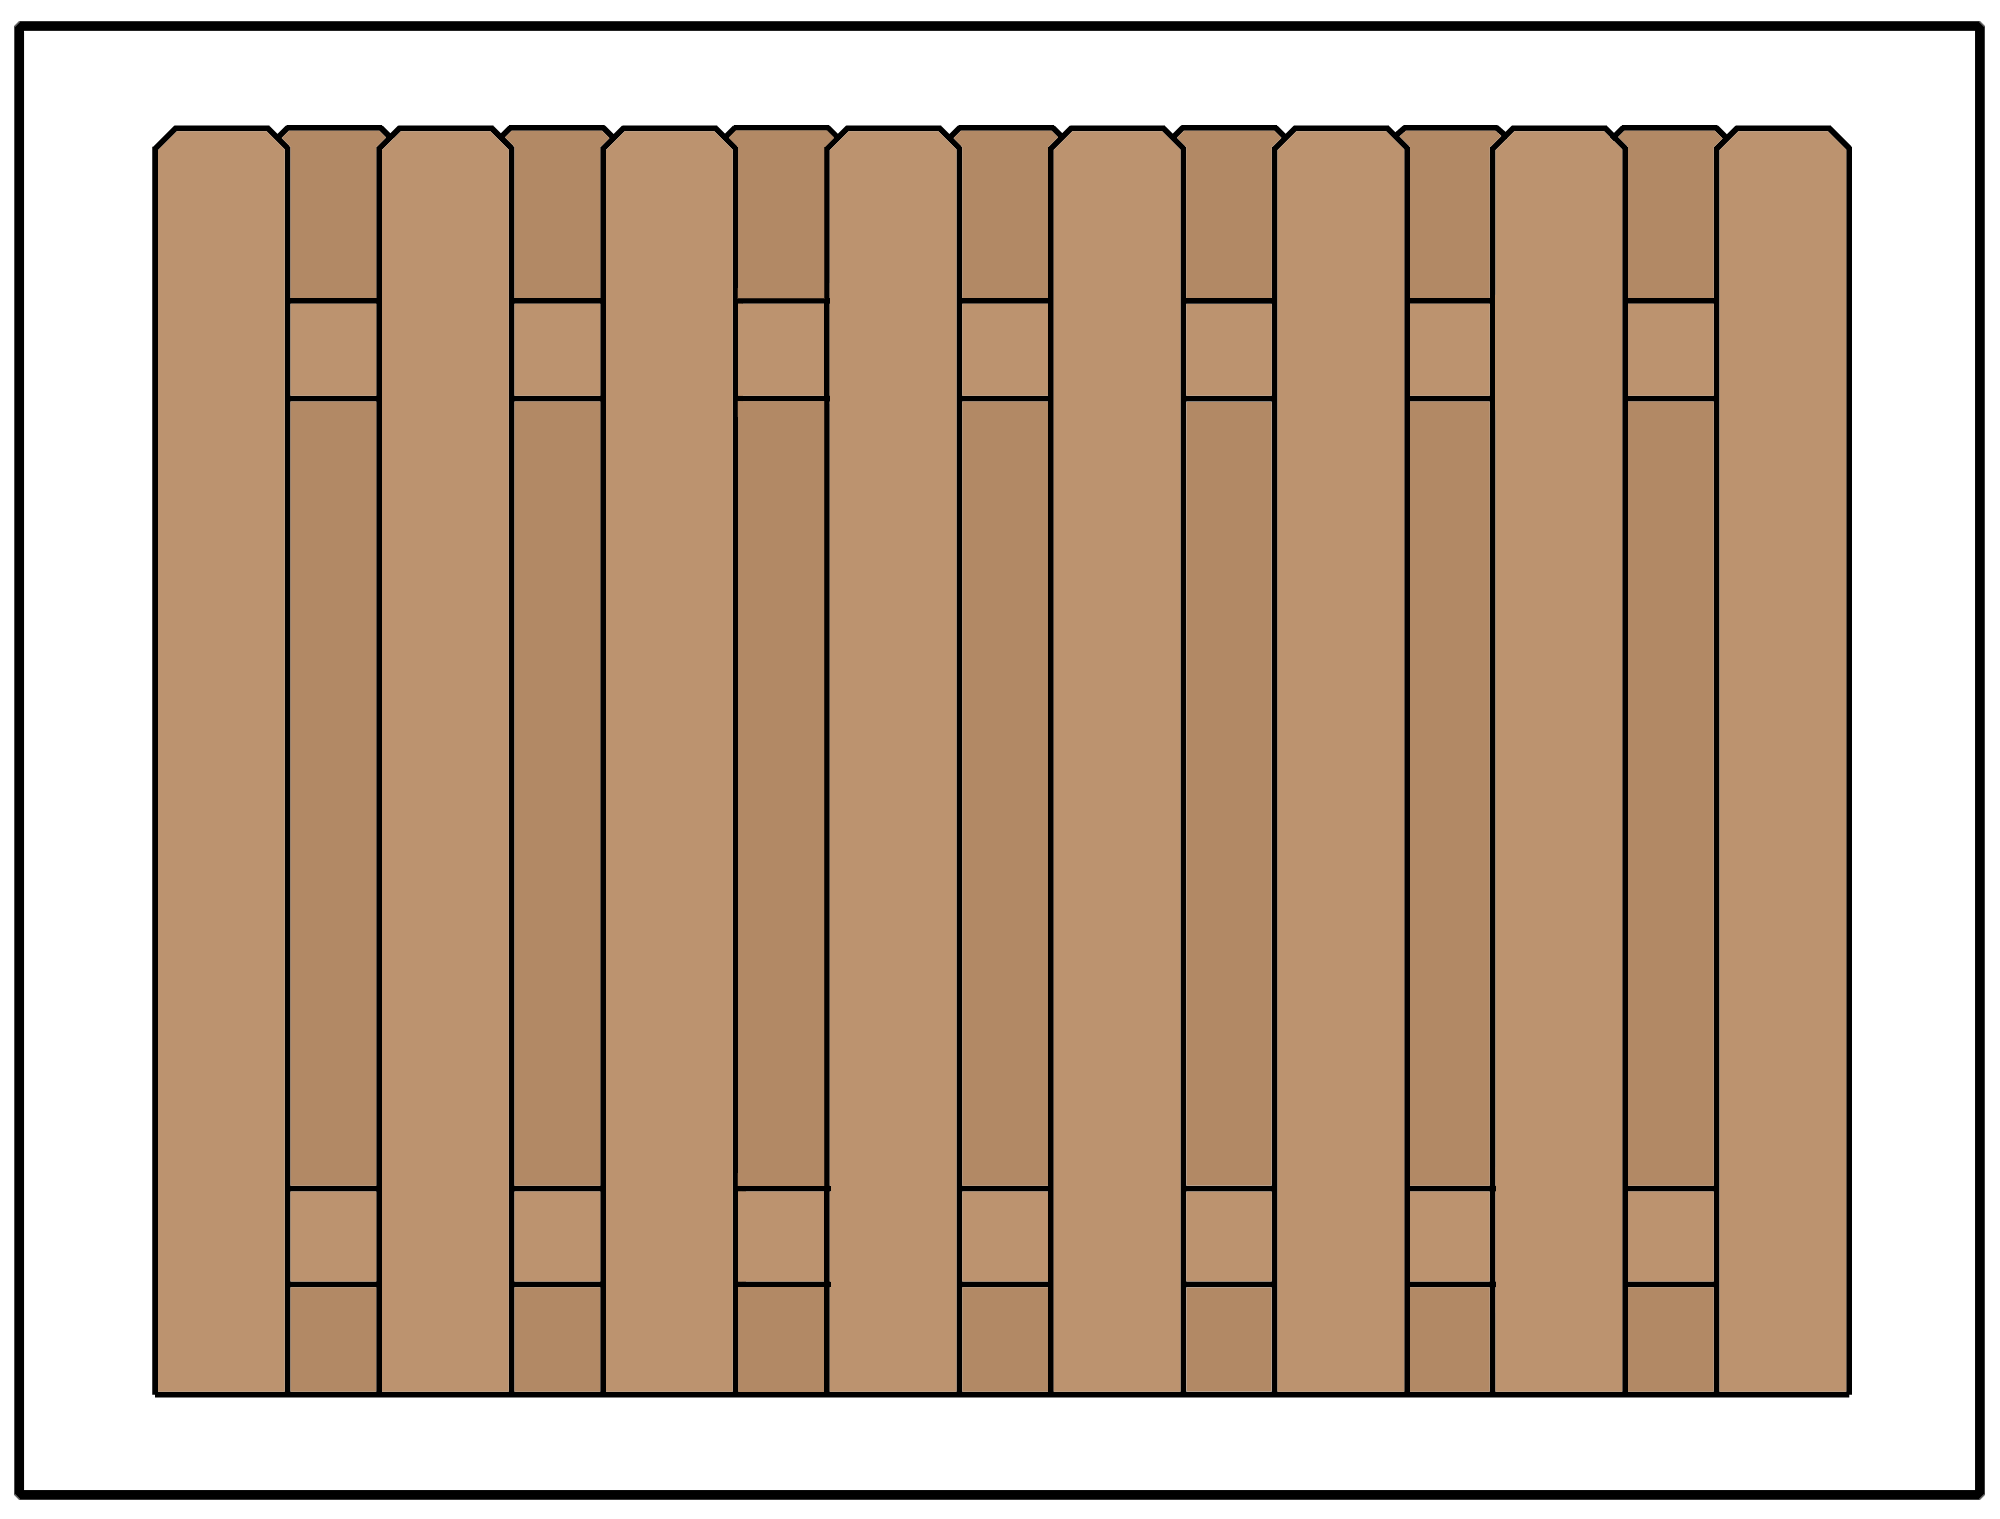 Illustration of a shadowbox style privacy fence